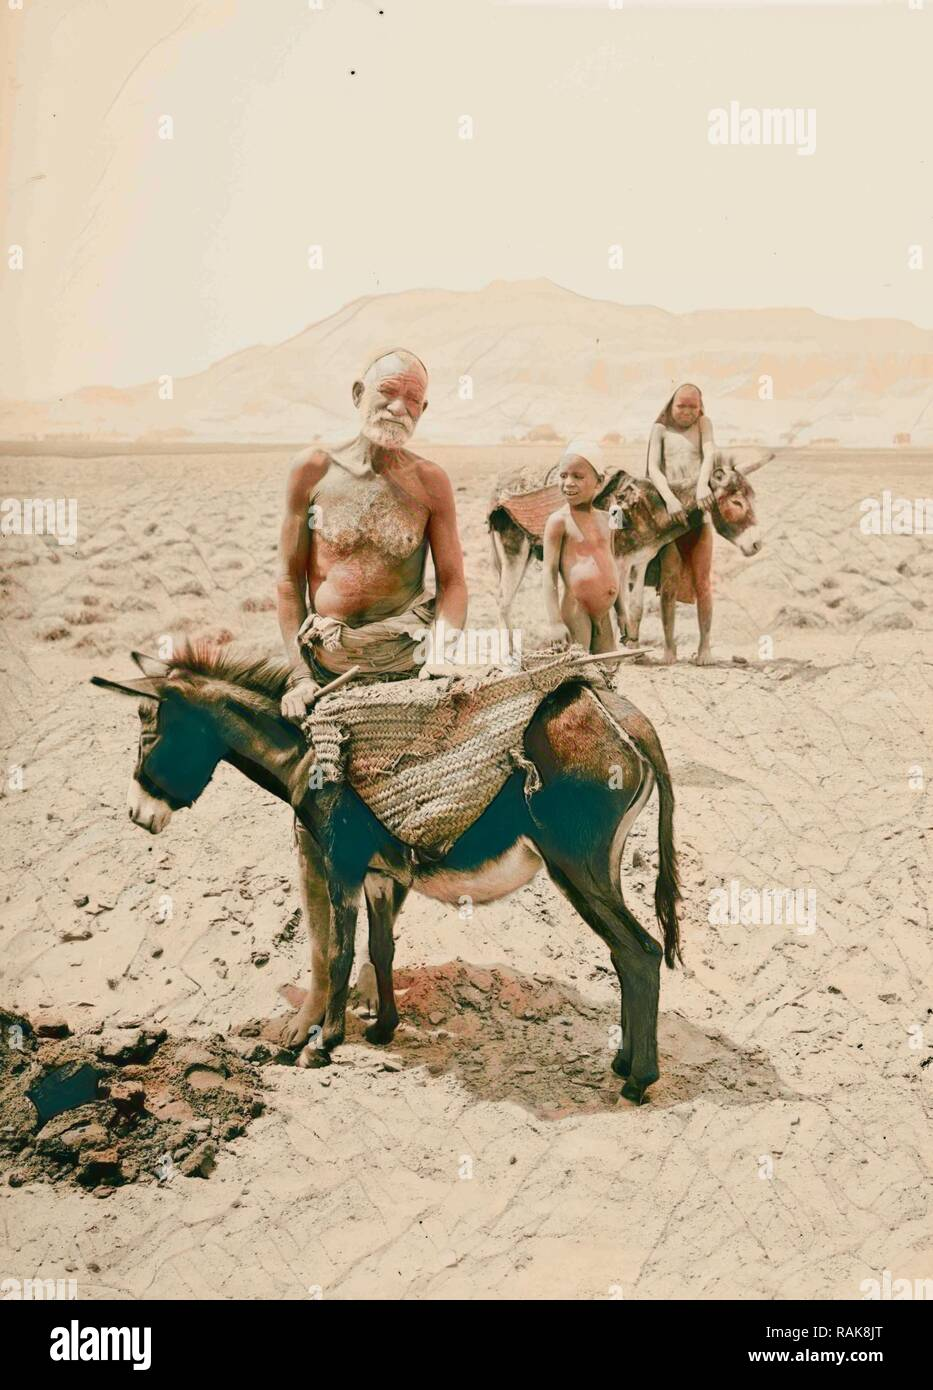 Peasants of Upper Egypt 1900, Egypt. Reimagined by Gibon. Classic art with a modern twist reimagined - Stock Image